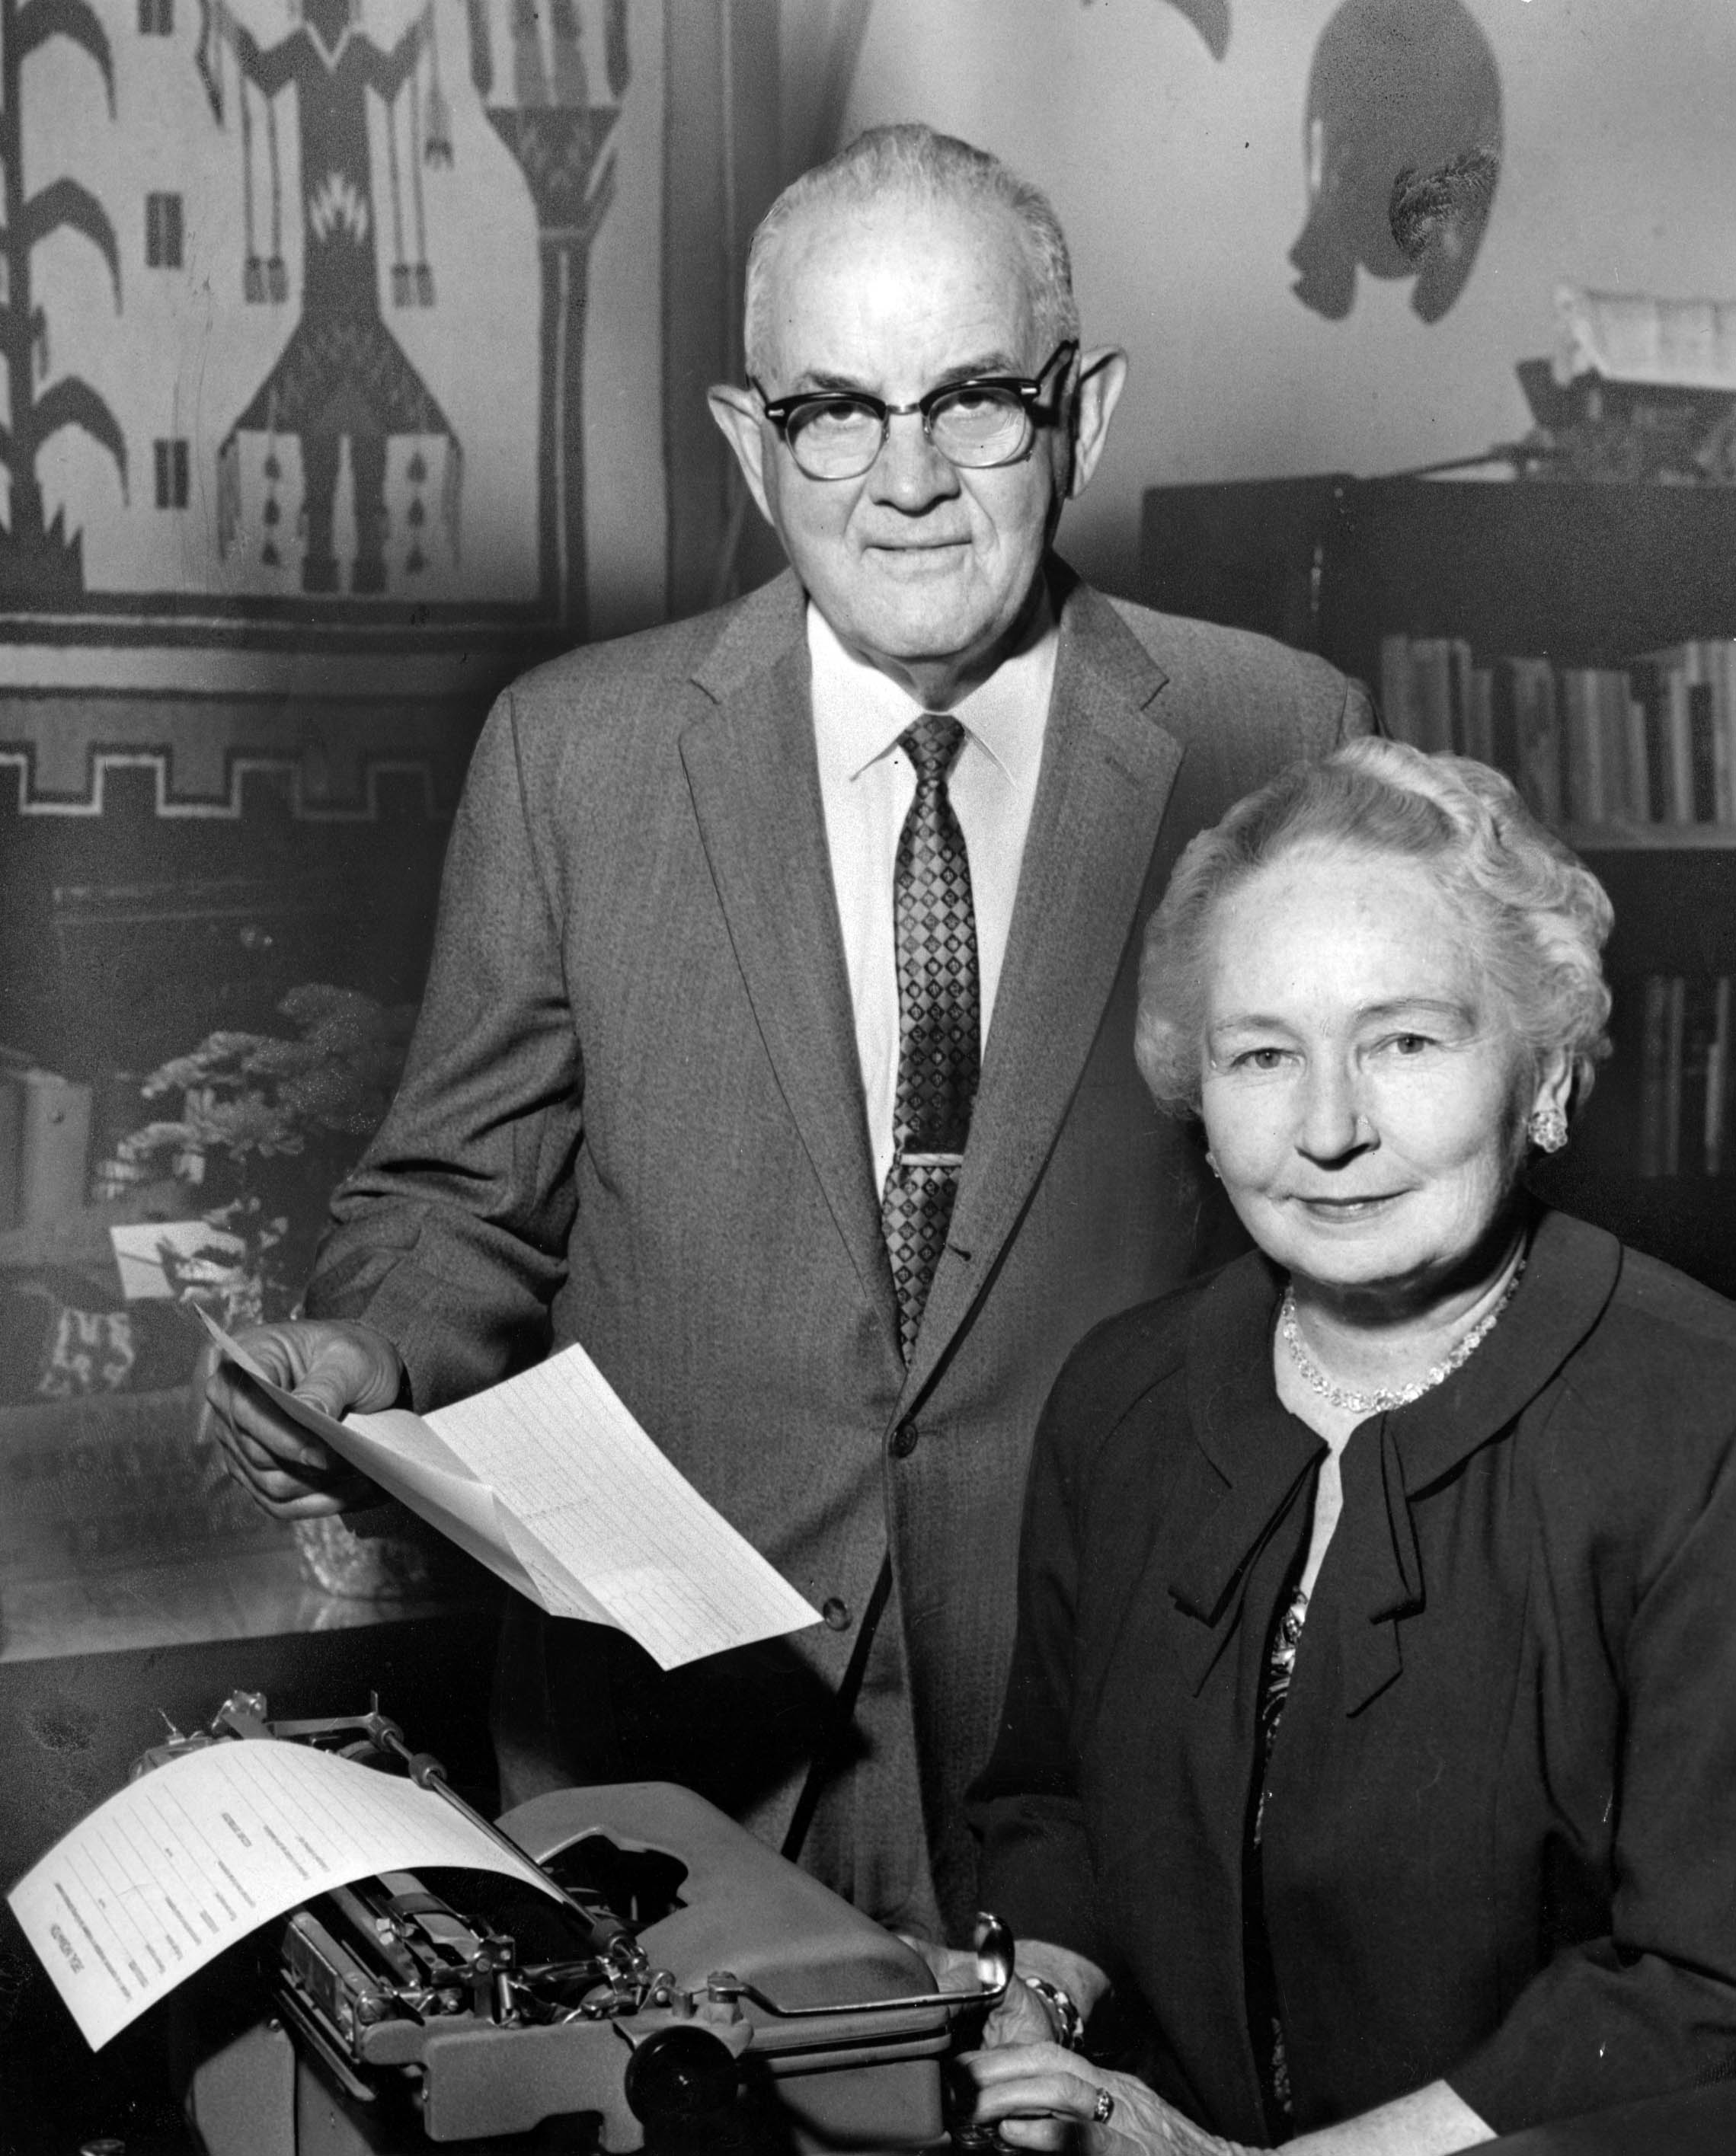 Elder Spencer W. Kimball and his wife, Sister Camilla Eyring Kimball, pose for a photo in their home in the 1960s, about 20 years after he was called to serve in the Quorum of the Twelve Apostles.